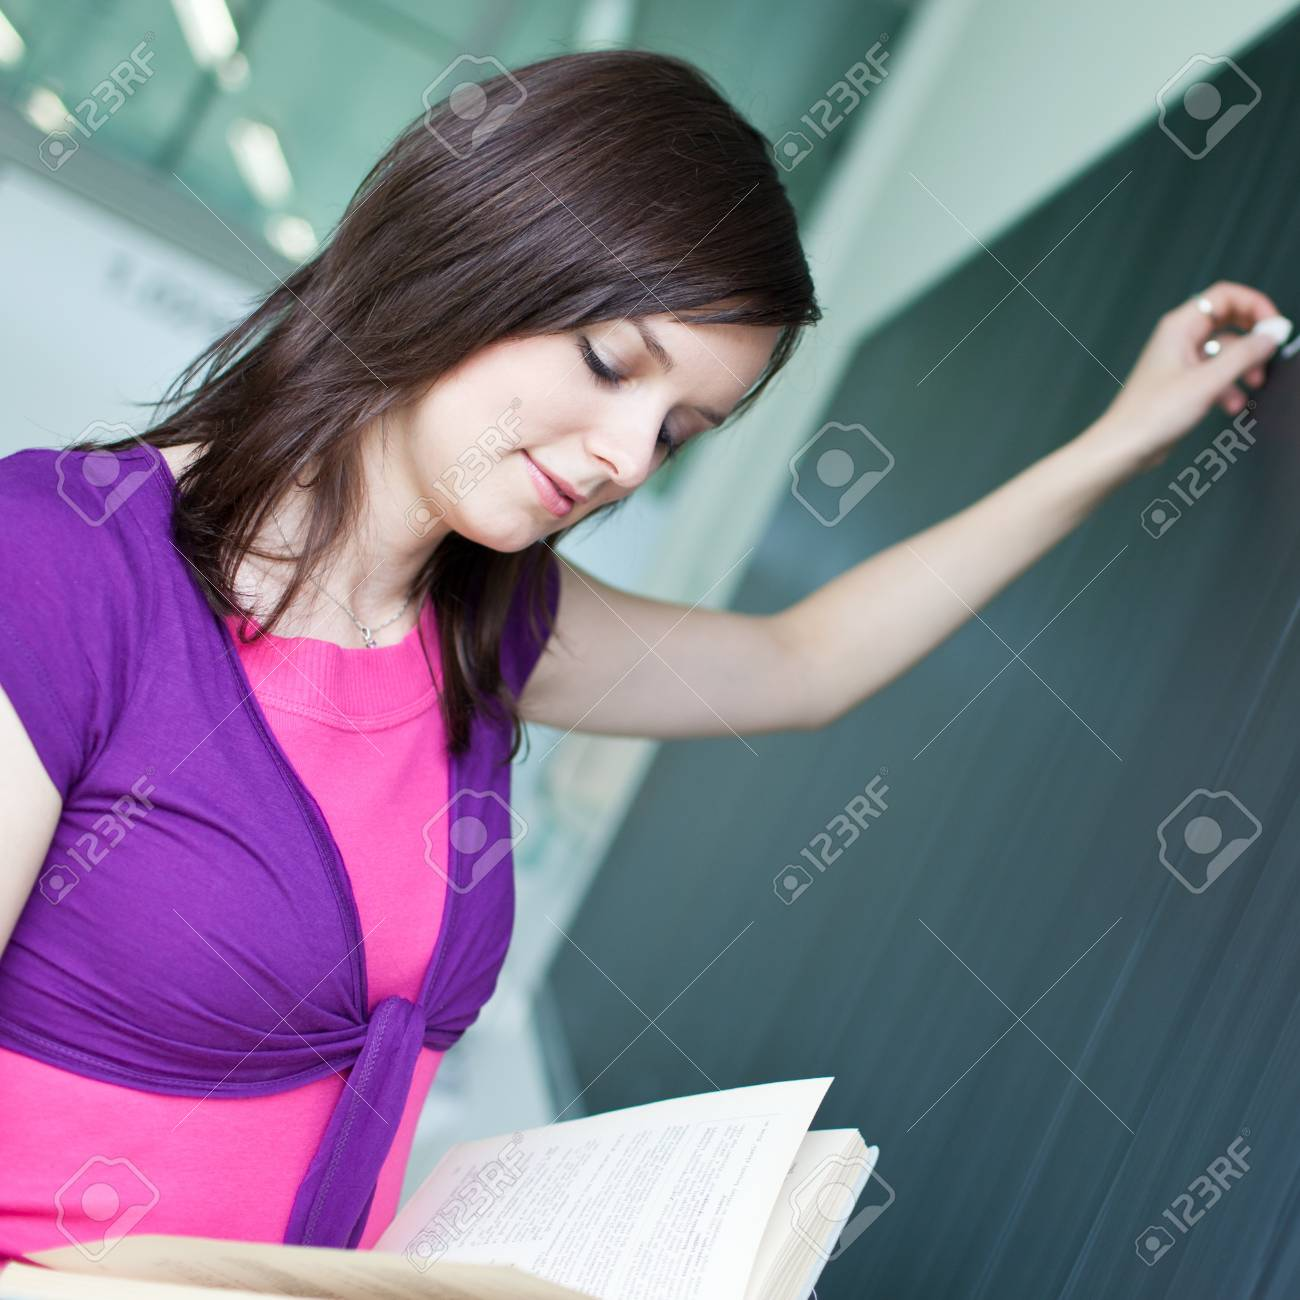 pretty young college student writing on the chalkboard/blackboard during a math class Stock Photo - 9697203